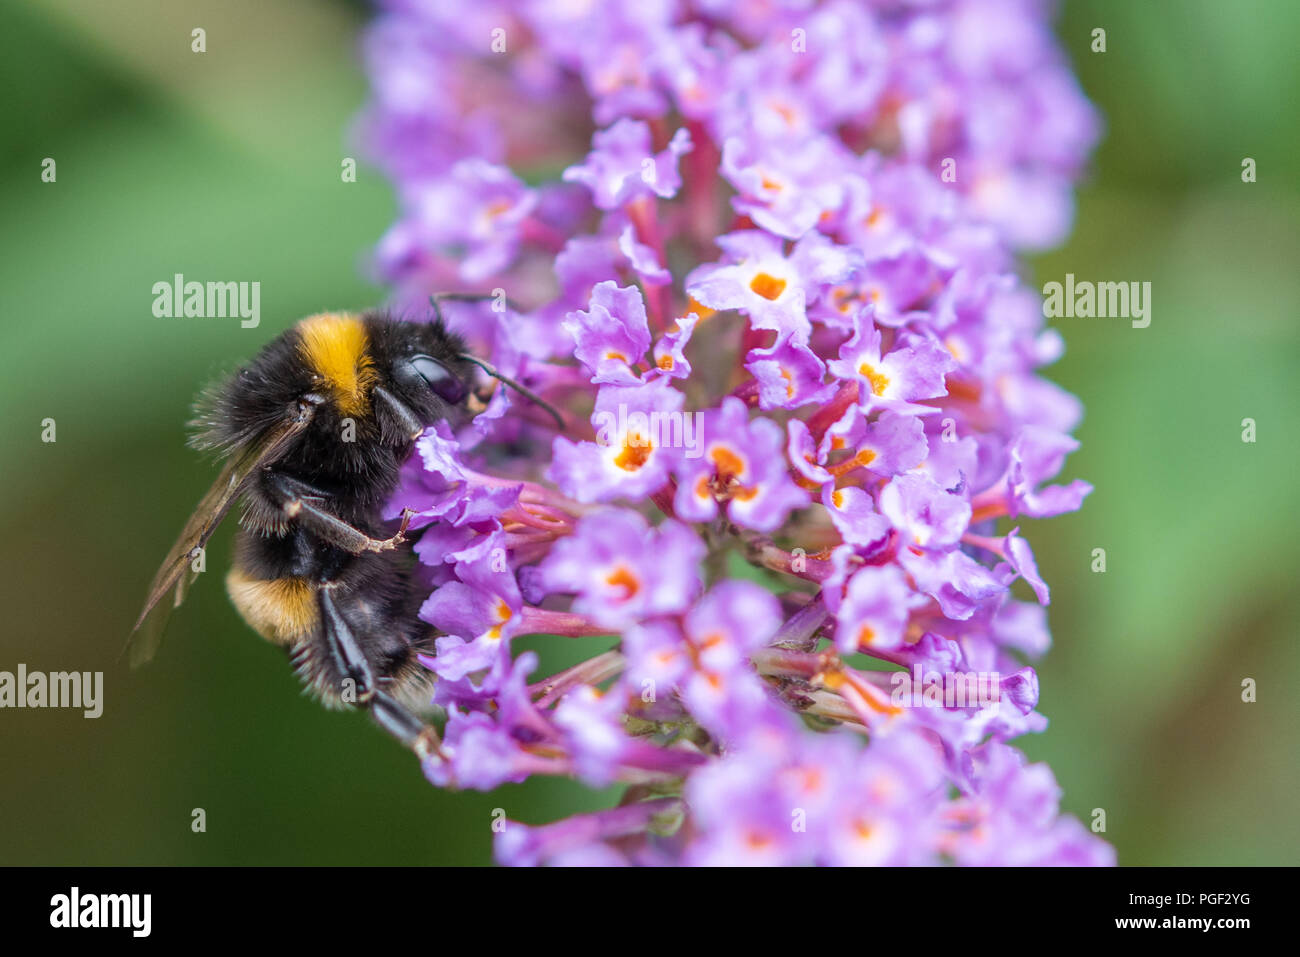 Close up of a bee collecting pollen from purple flower. - Stock Image